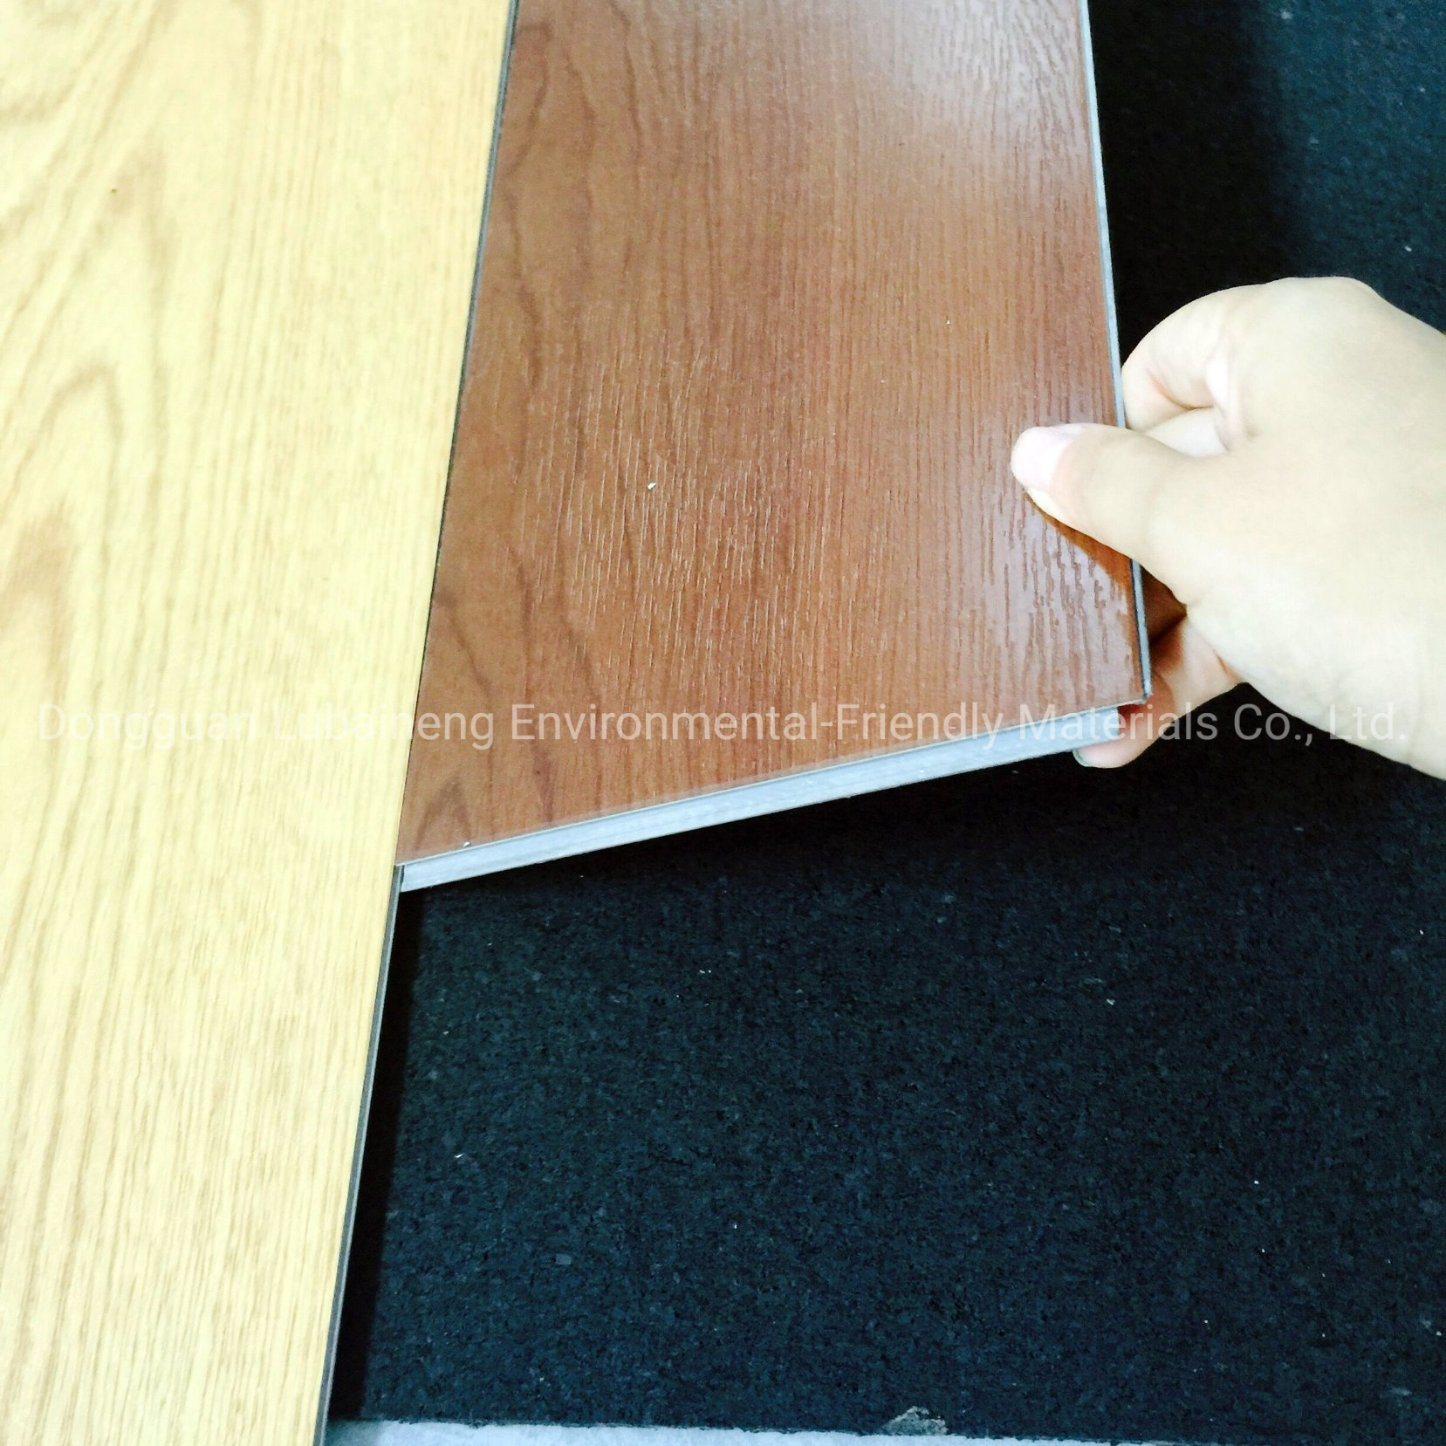 China Apartment Floor Soundproof, Soundproof Underlay For Laminate Flooring